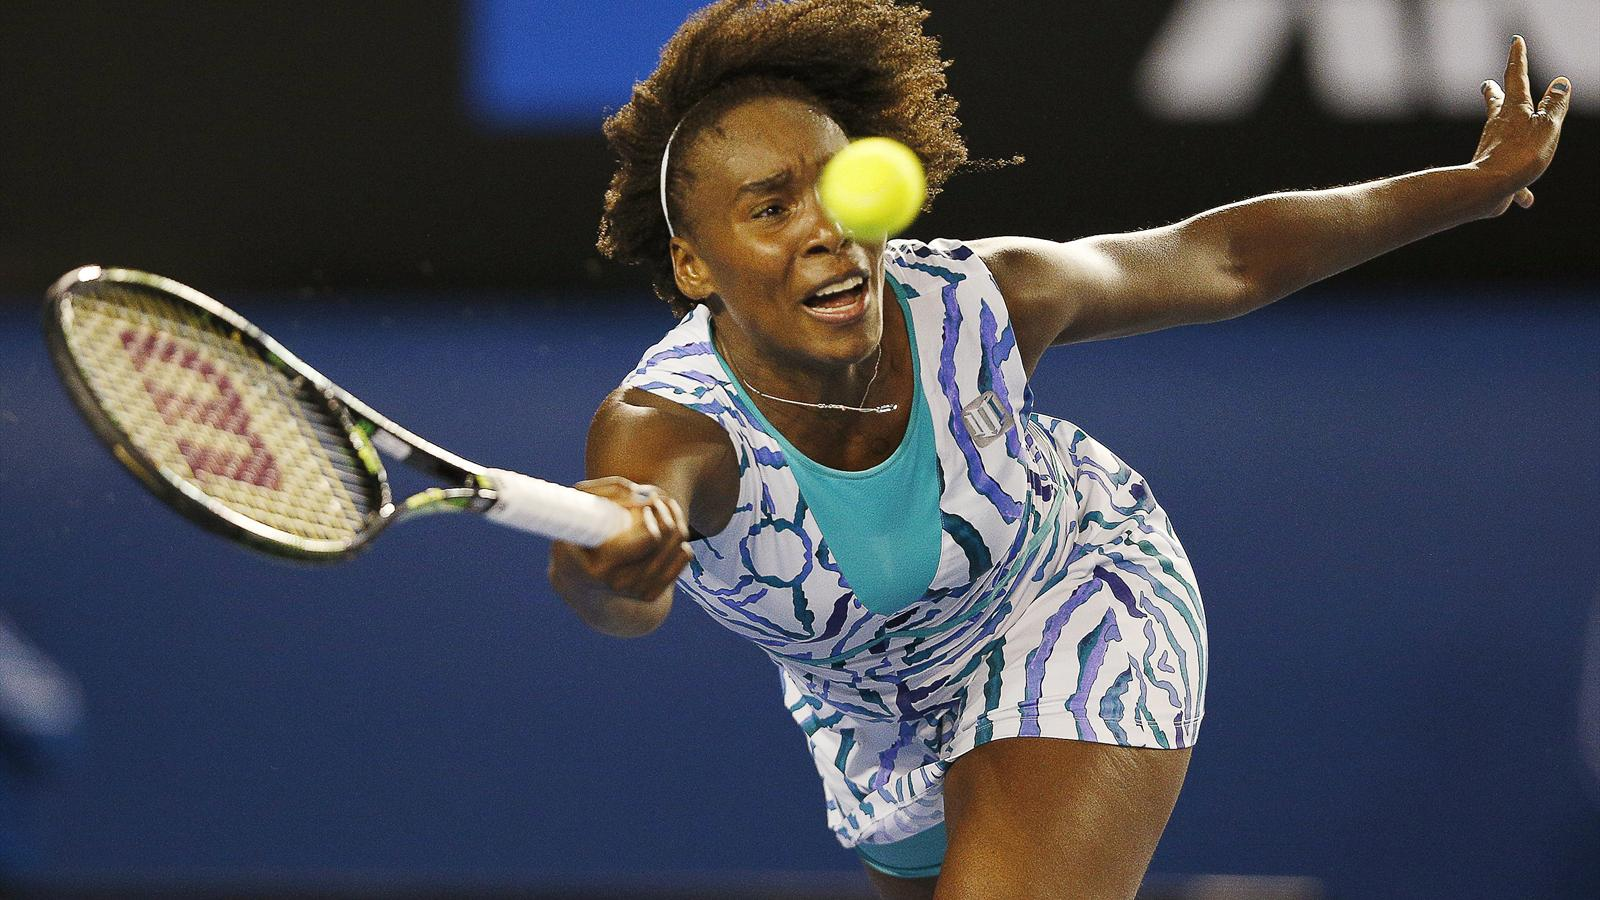 Venus Williams beats Radwanska